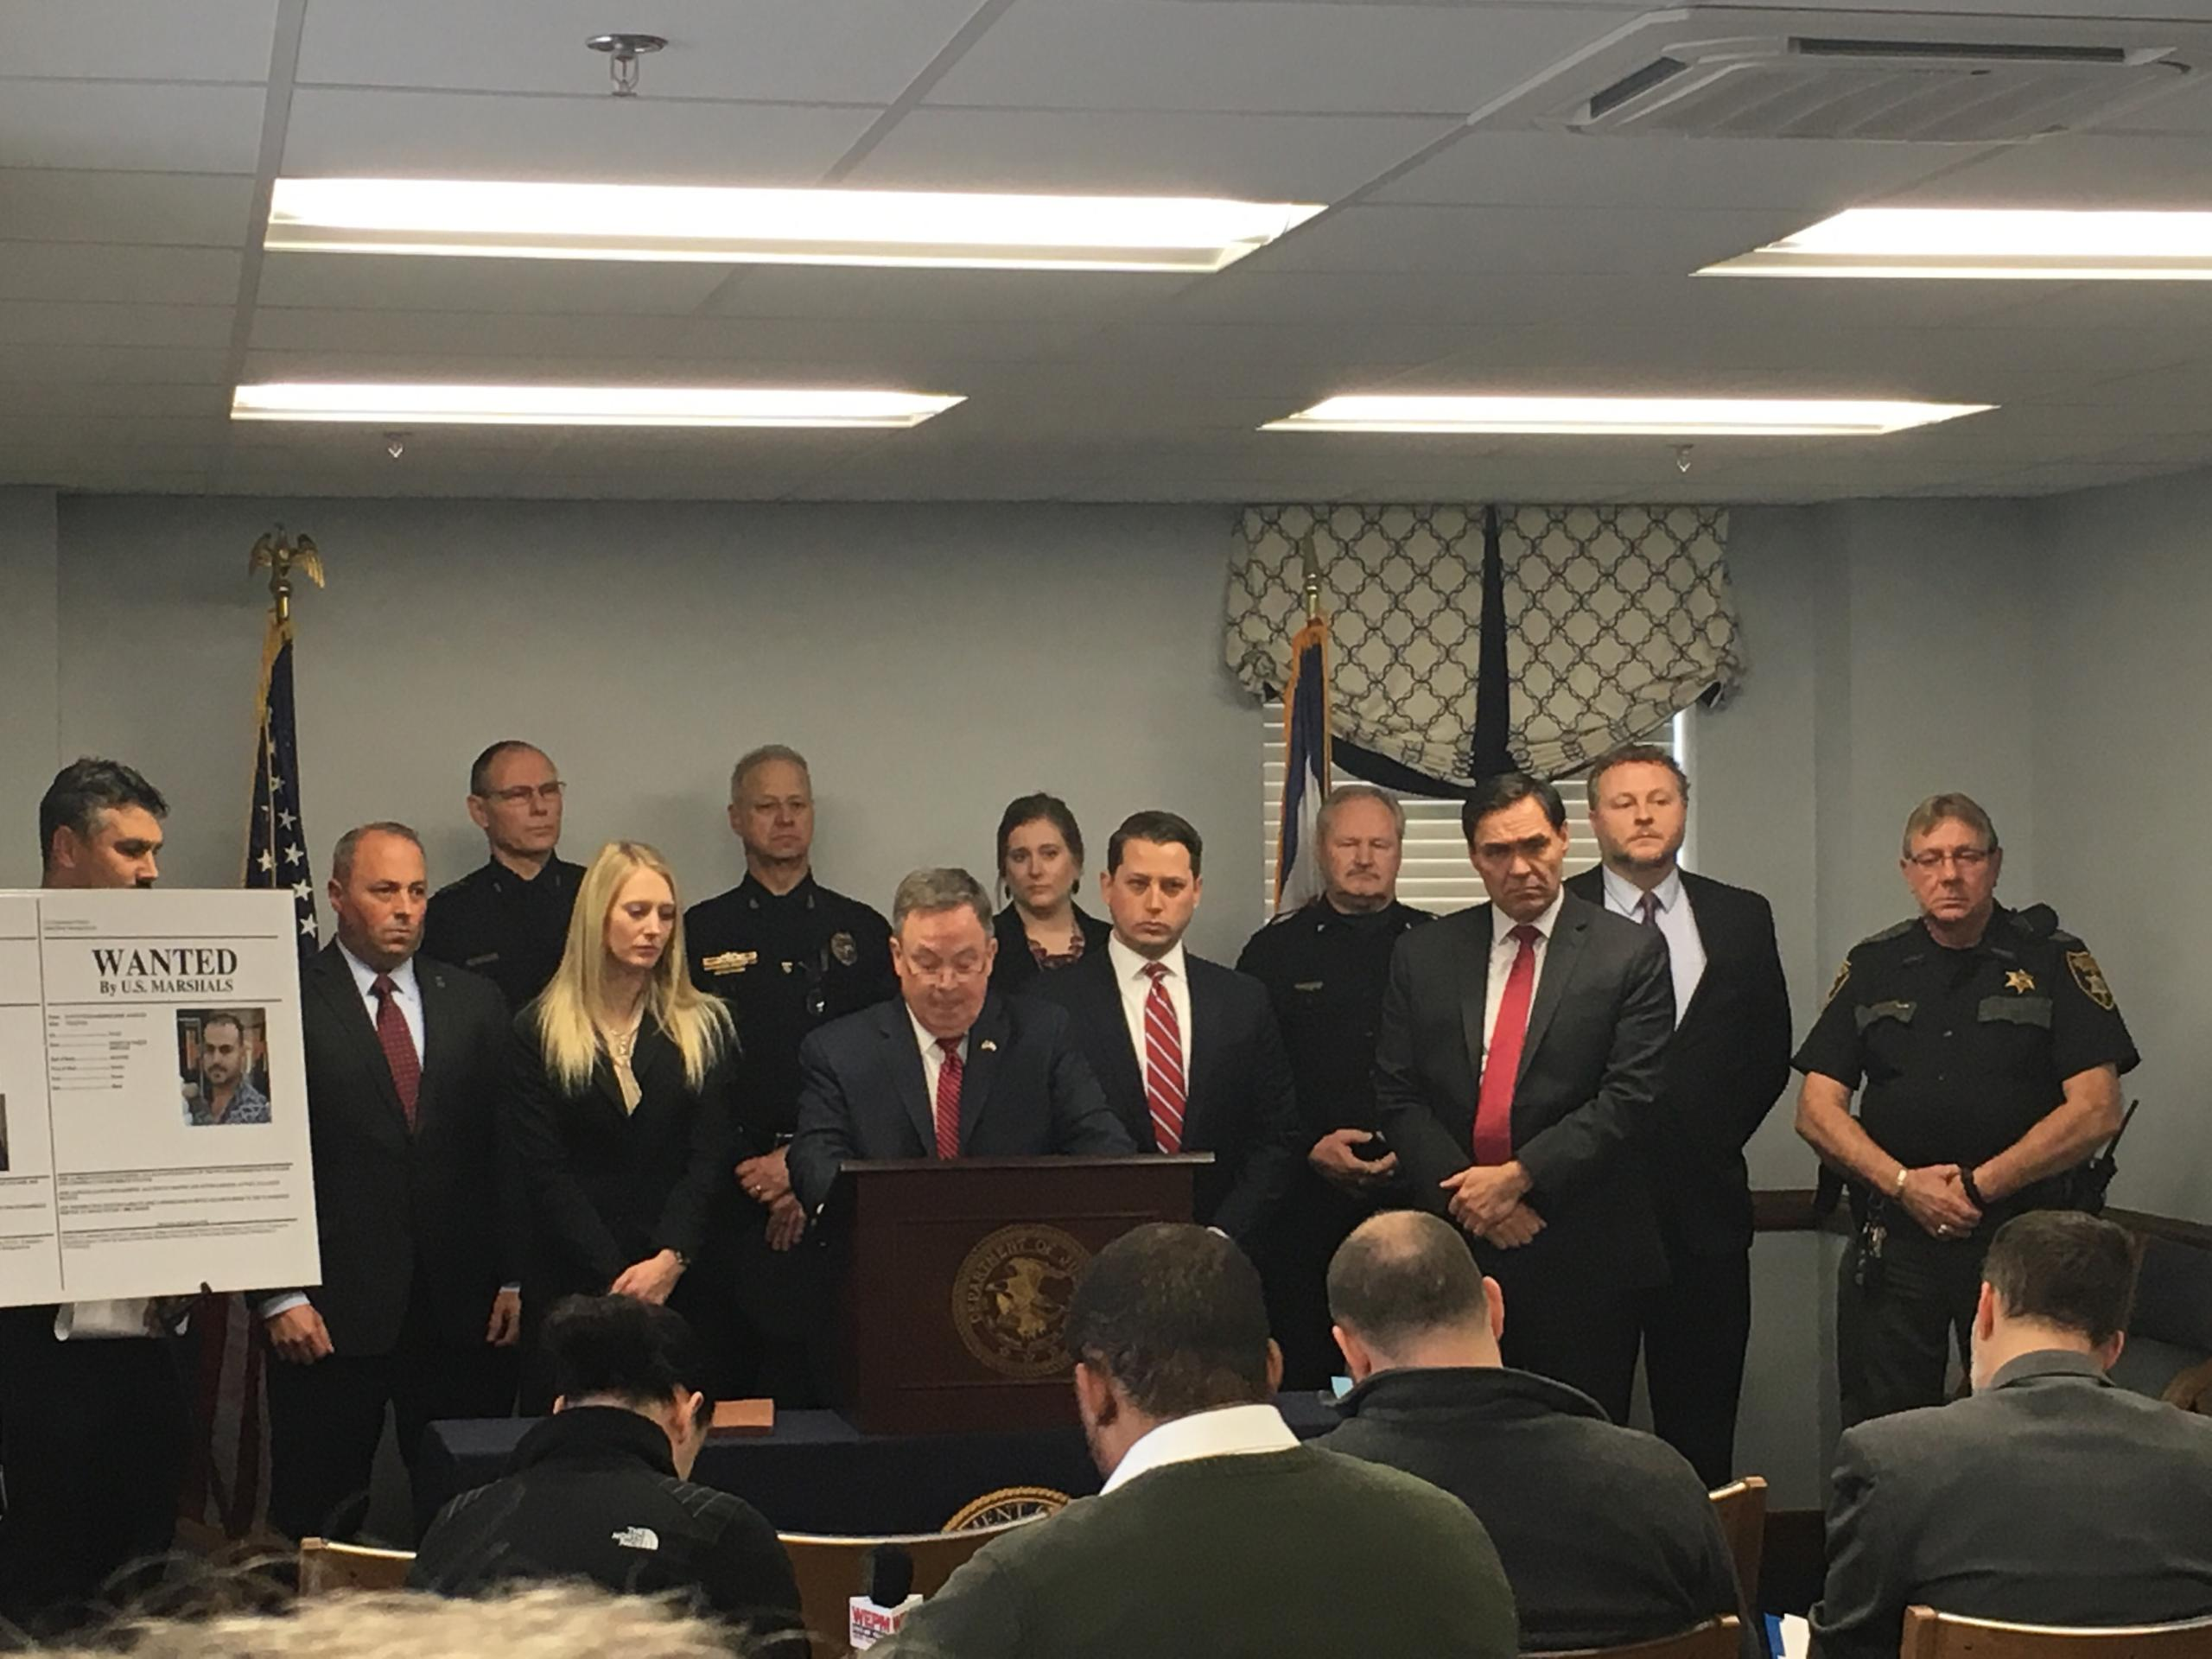 After nearly a two-year investigation into a drug trafficking operation that spanned multiple states, 10 people (including two MS-13 gang members) were indicted on a variety of federal charges.